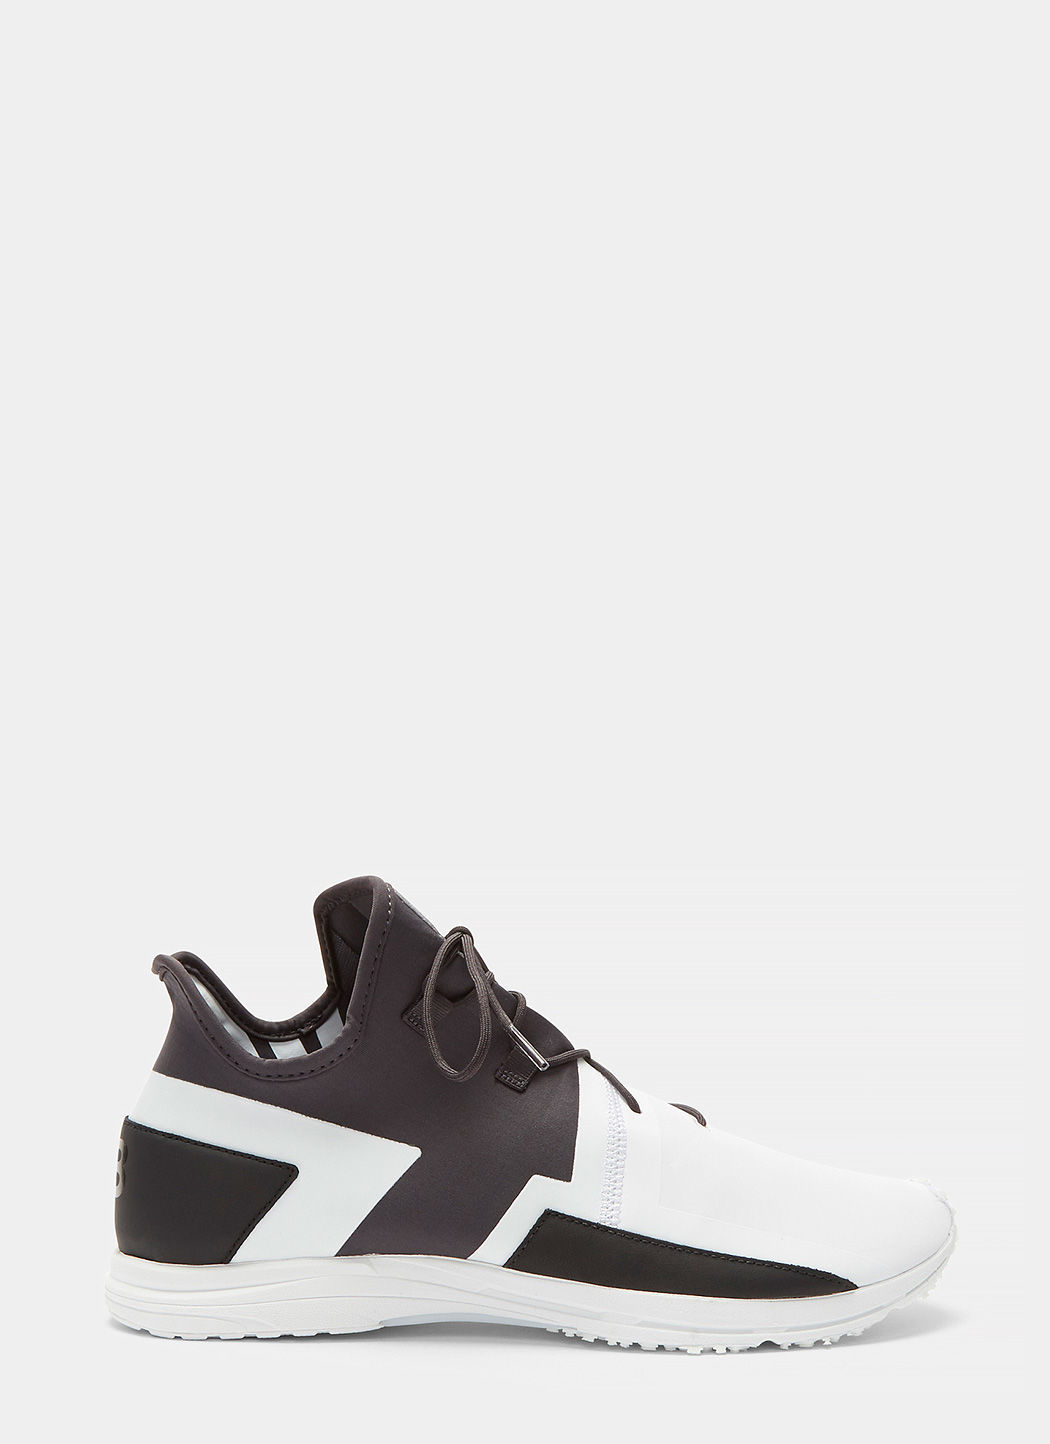 d80ec014c36e7 Y-3 Arc Leather-Trimmed Neoprene And Rubberised-Jersey Sneakers In White  Multi